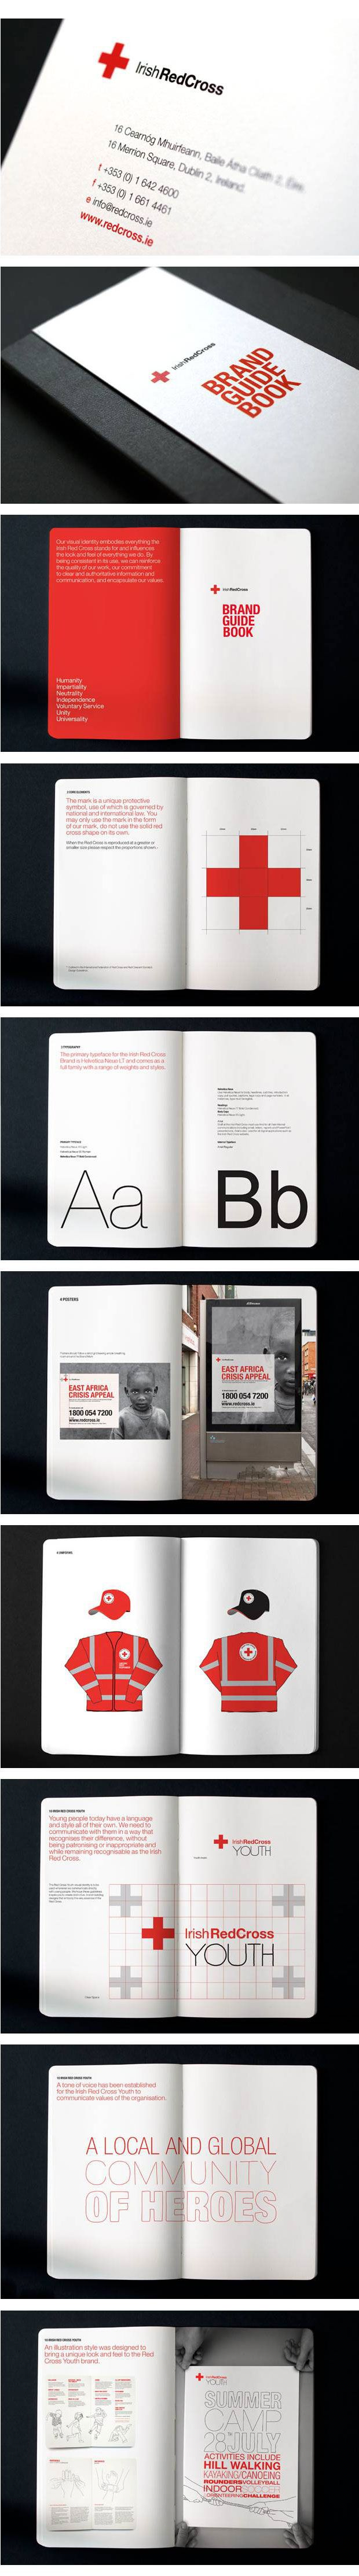 Cool Brand Identity Design. Irish Red Cross. #branding #brandidentity [http://www.pinterest.com/alfredchong/]